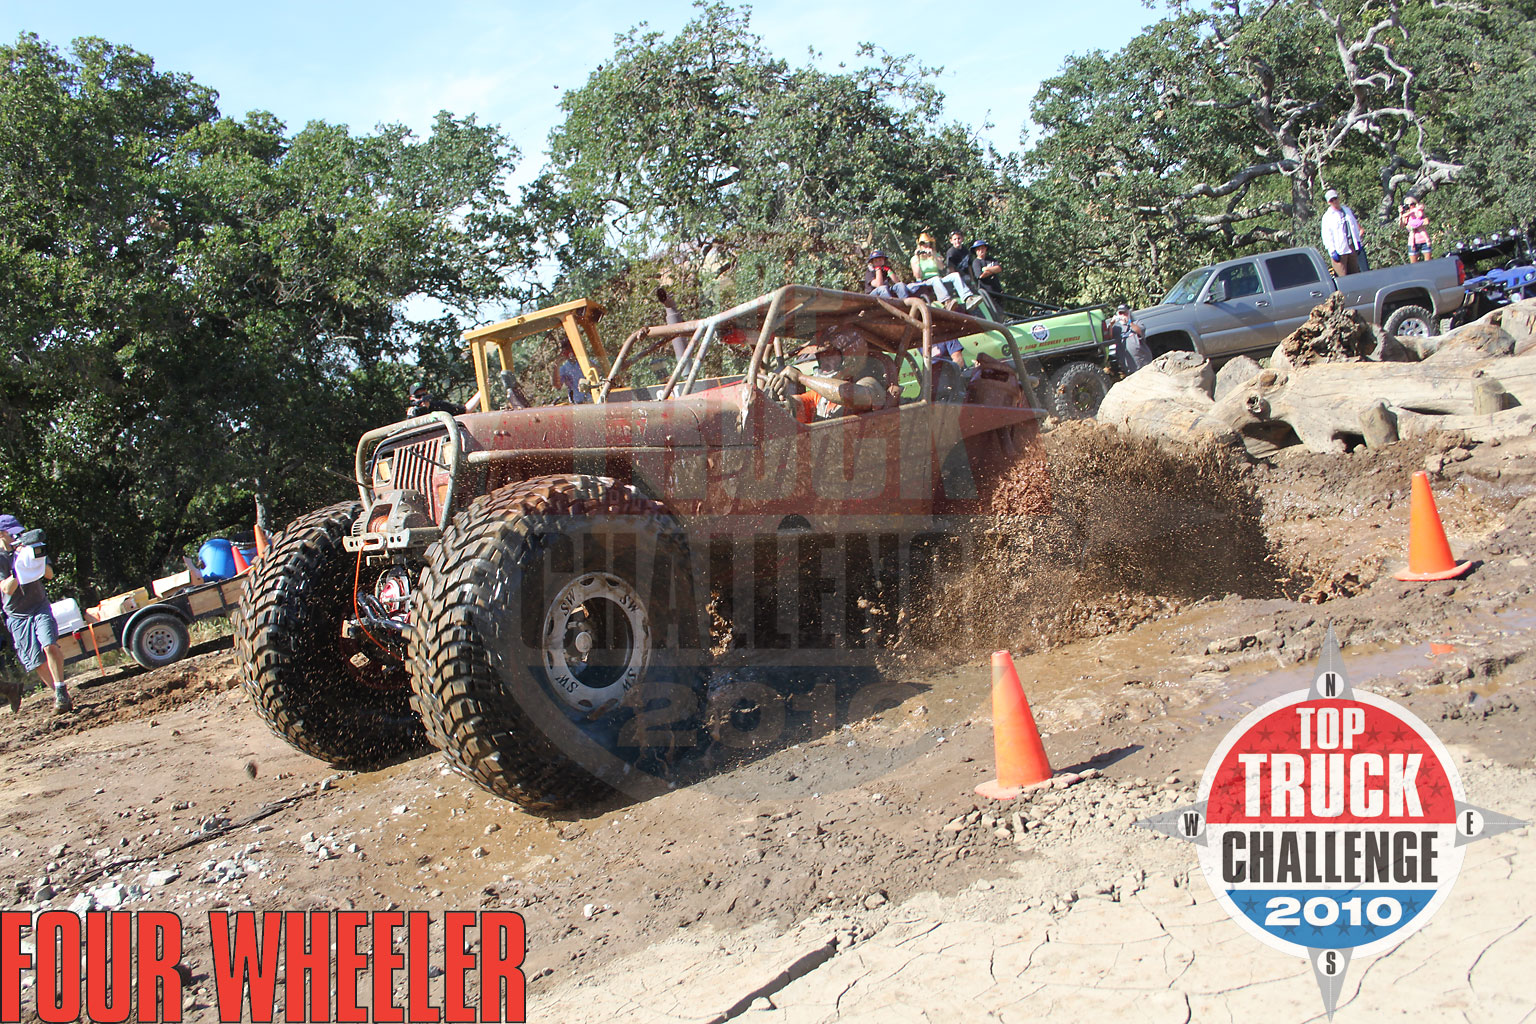 2010 Top Truck Challenge Frame Twister Mike Karwath 2009 Tube Chassis Yj Buggy